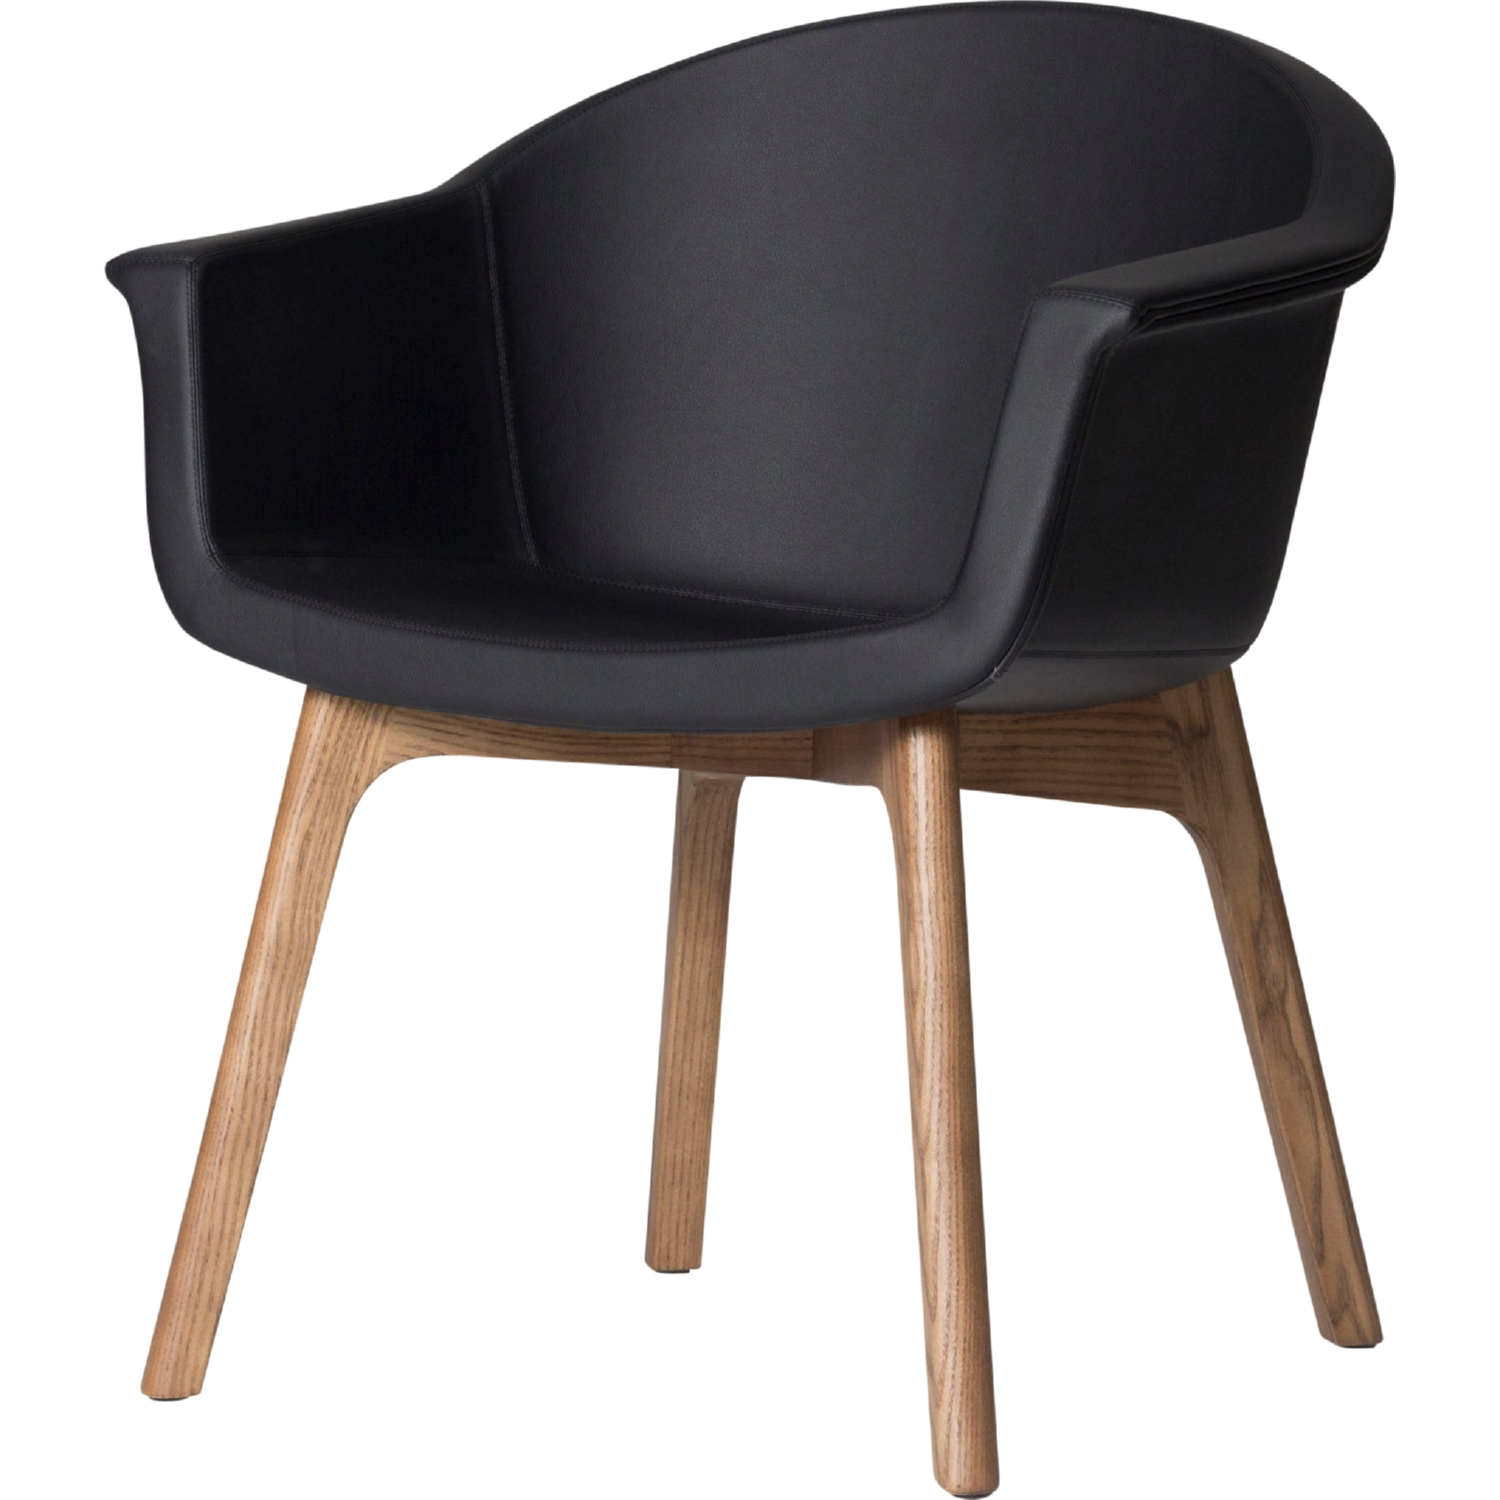 Fantastic Vitale Accent Chair In Black Naugahyde On Ash Stained Walnut Legs By Nuevo Modern Furniture Ncnpc Chair Design For Home Ncnpcorg